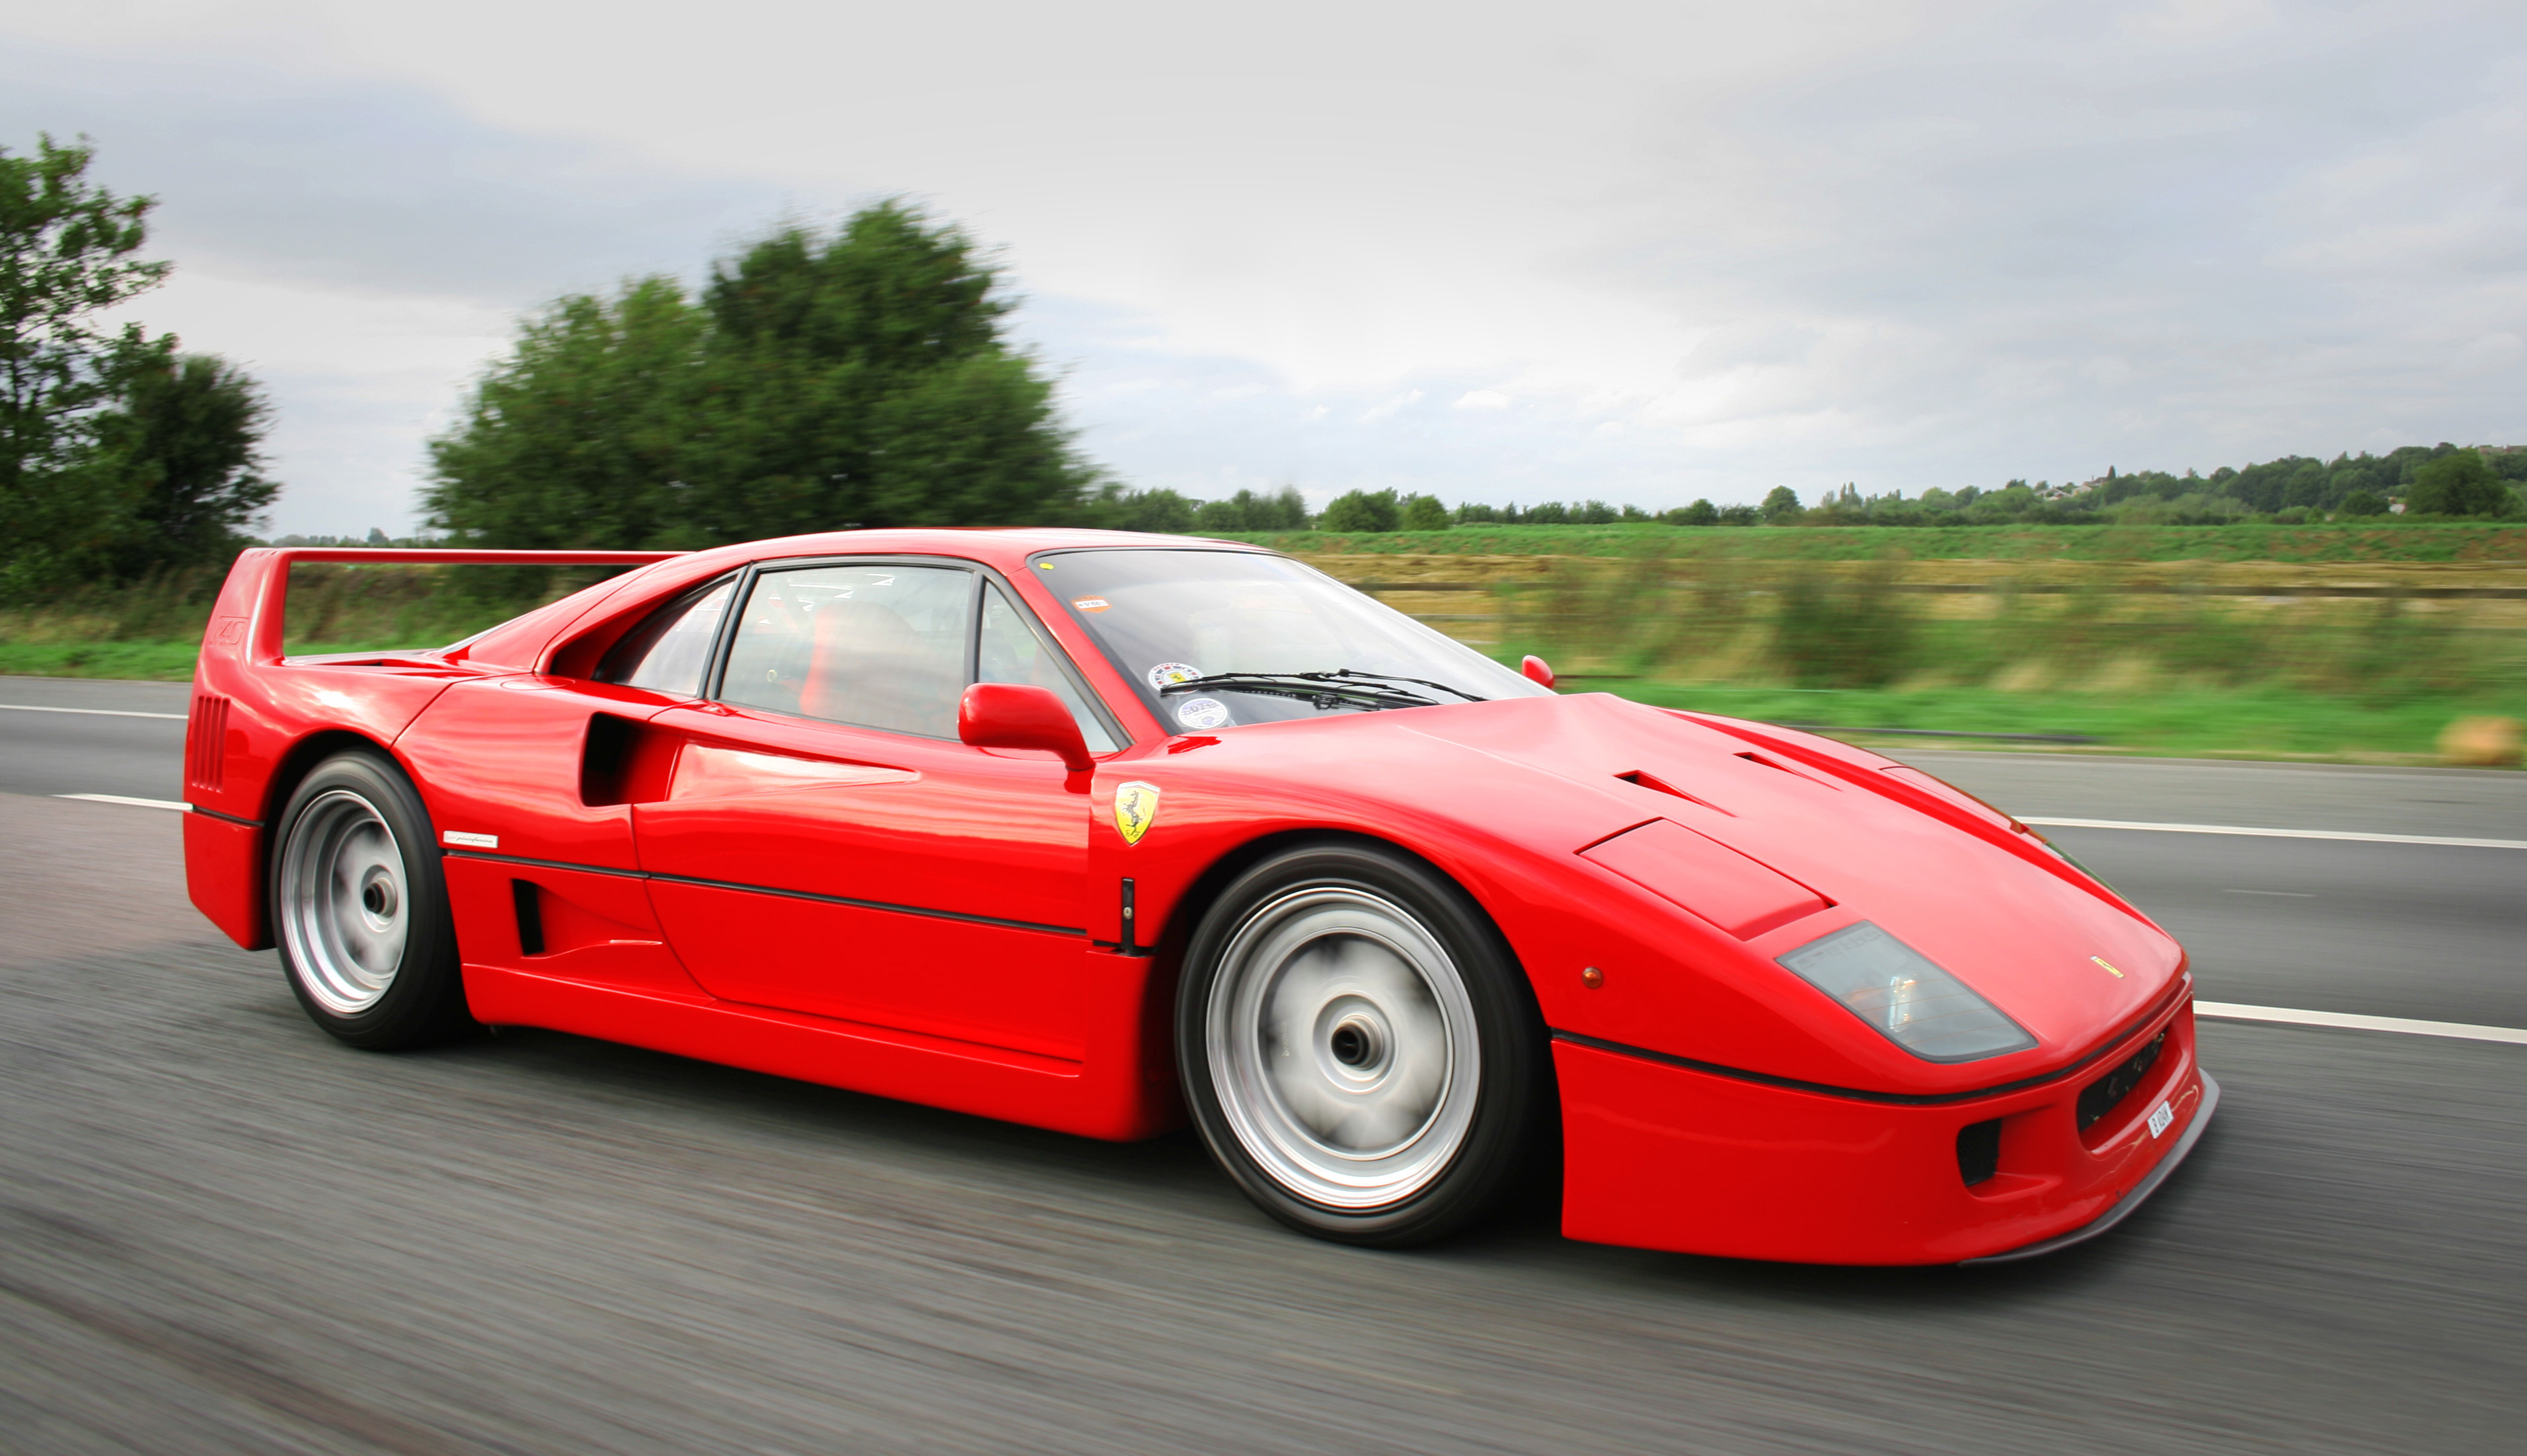 Ferrari F40 14 Record-Setting Supercars That Made an Impression